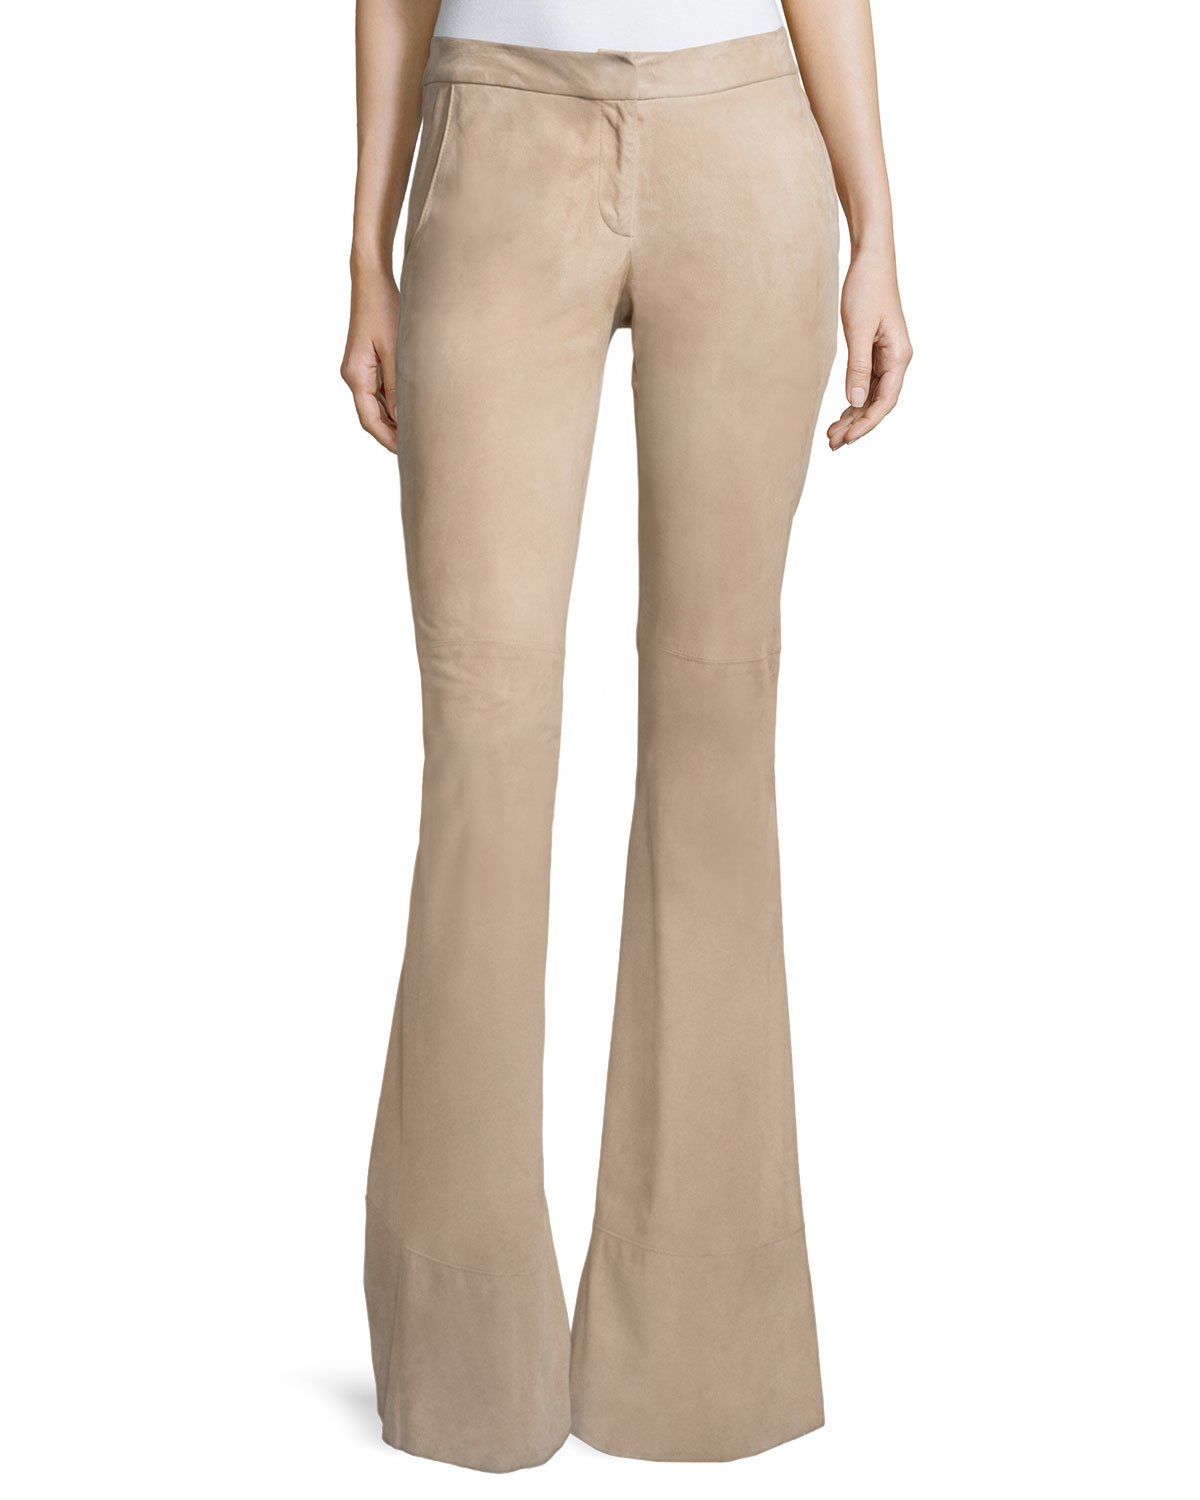 Free shipping and returns on Women's Suede Pants & Leggings at free-desktop-stripper.ml